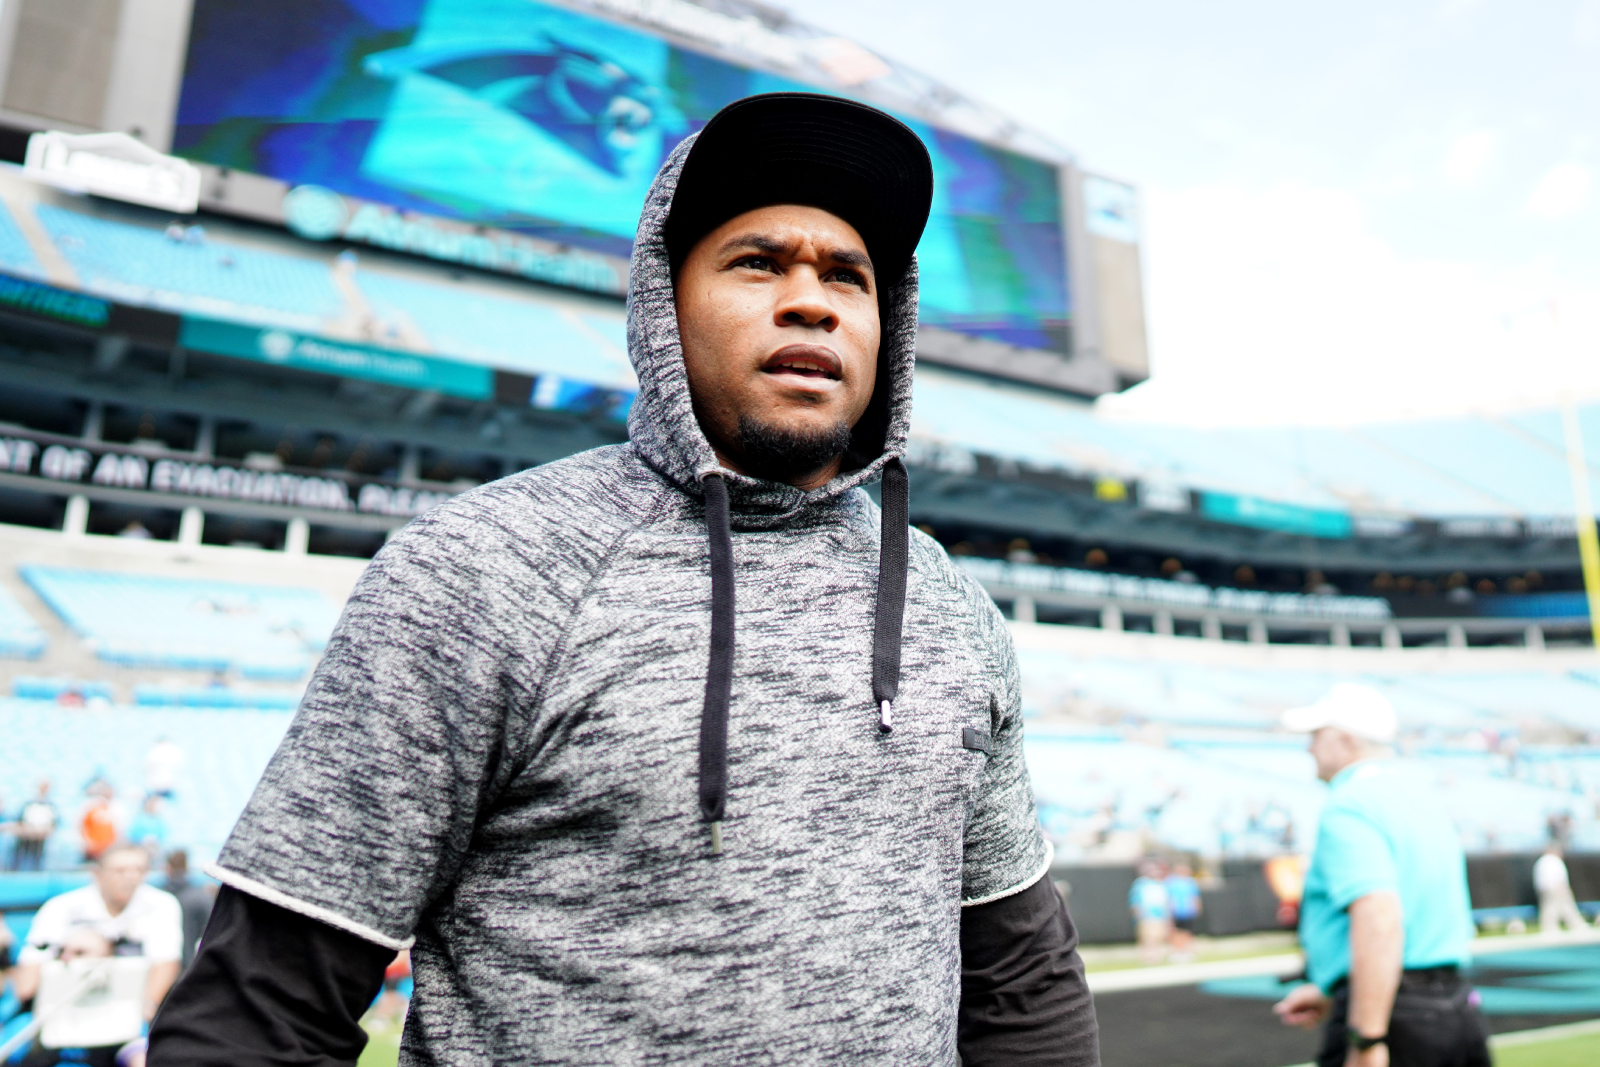 Steve Smith was a legendary receiver for the Carolina Panthers. He recently took a shot at another former Panthers receiver, Kelvin Benjamin.